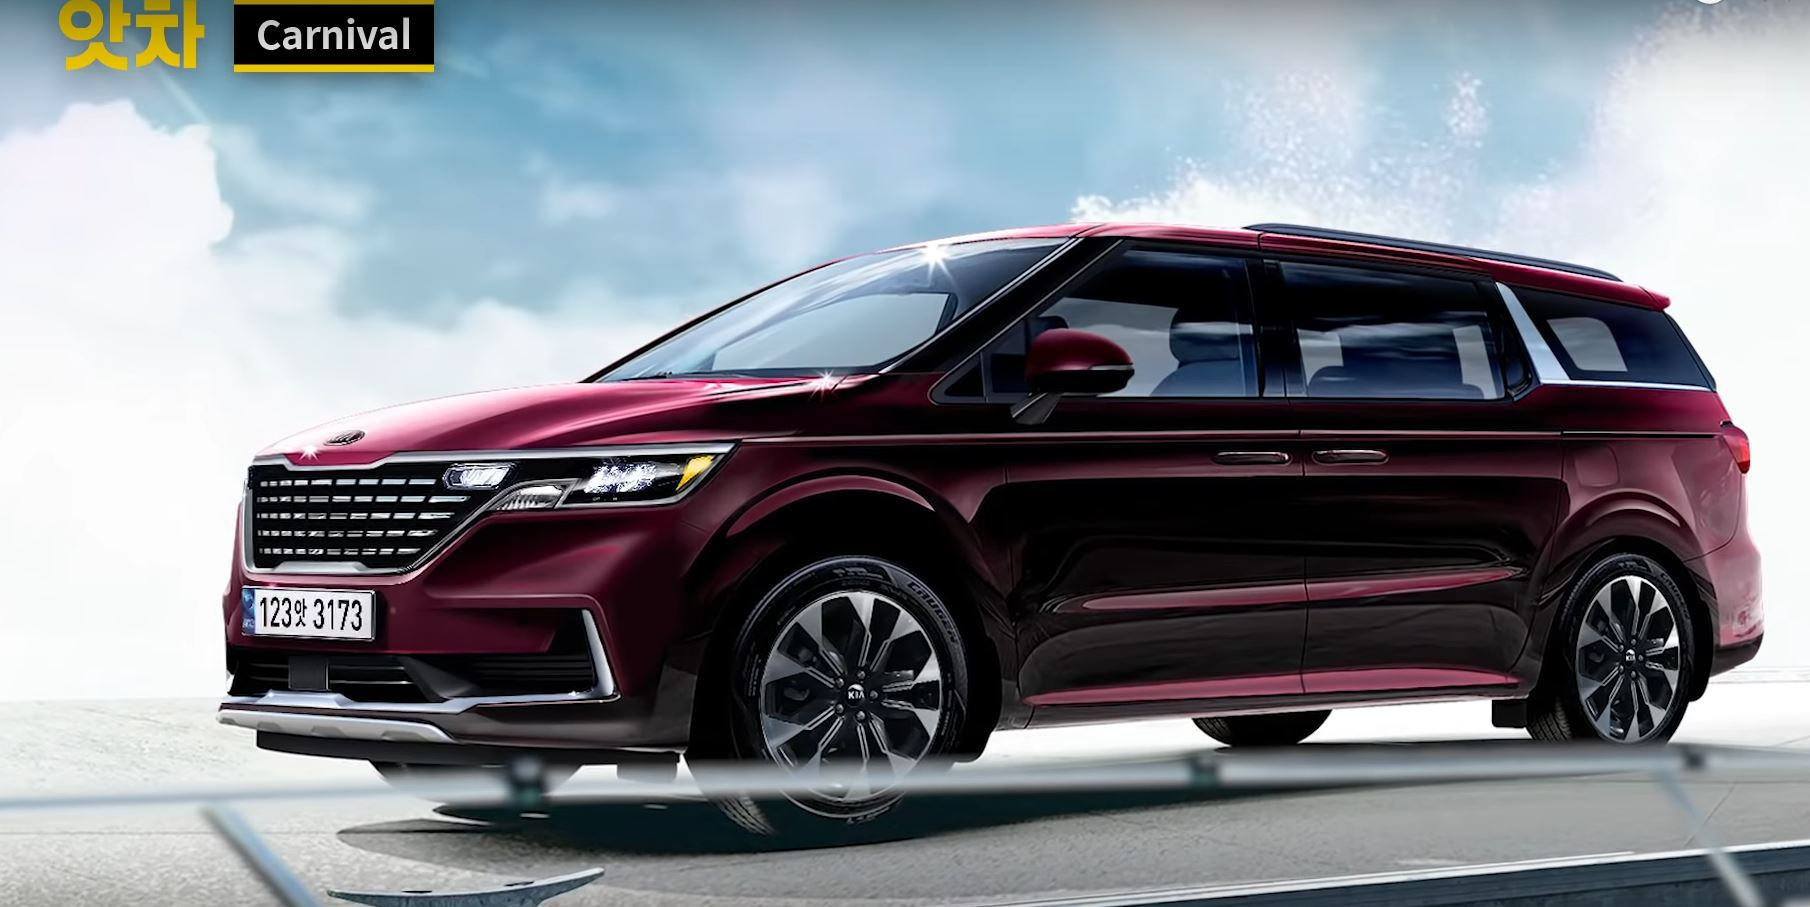 All New Kia Sedona 2021 Rendering Images